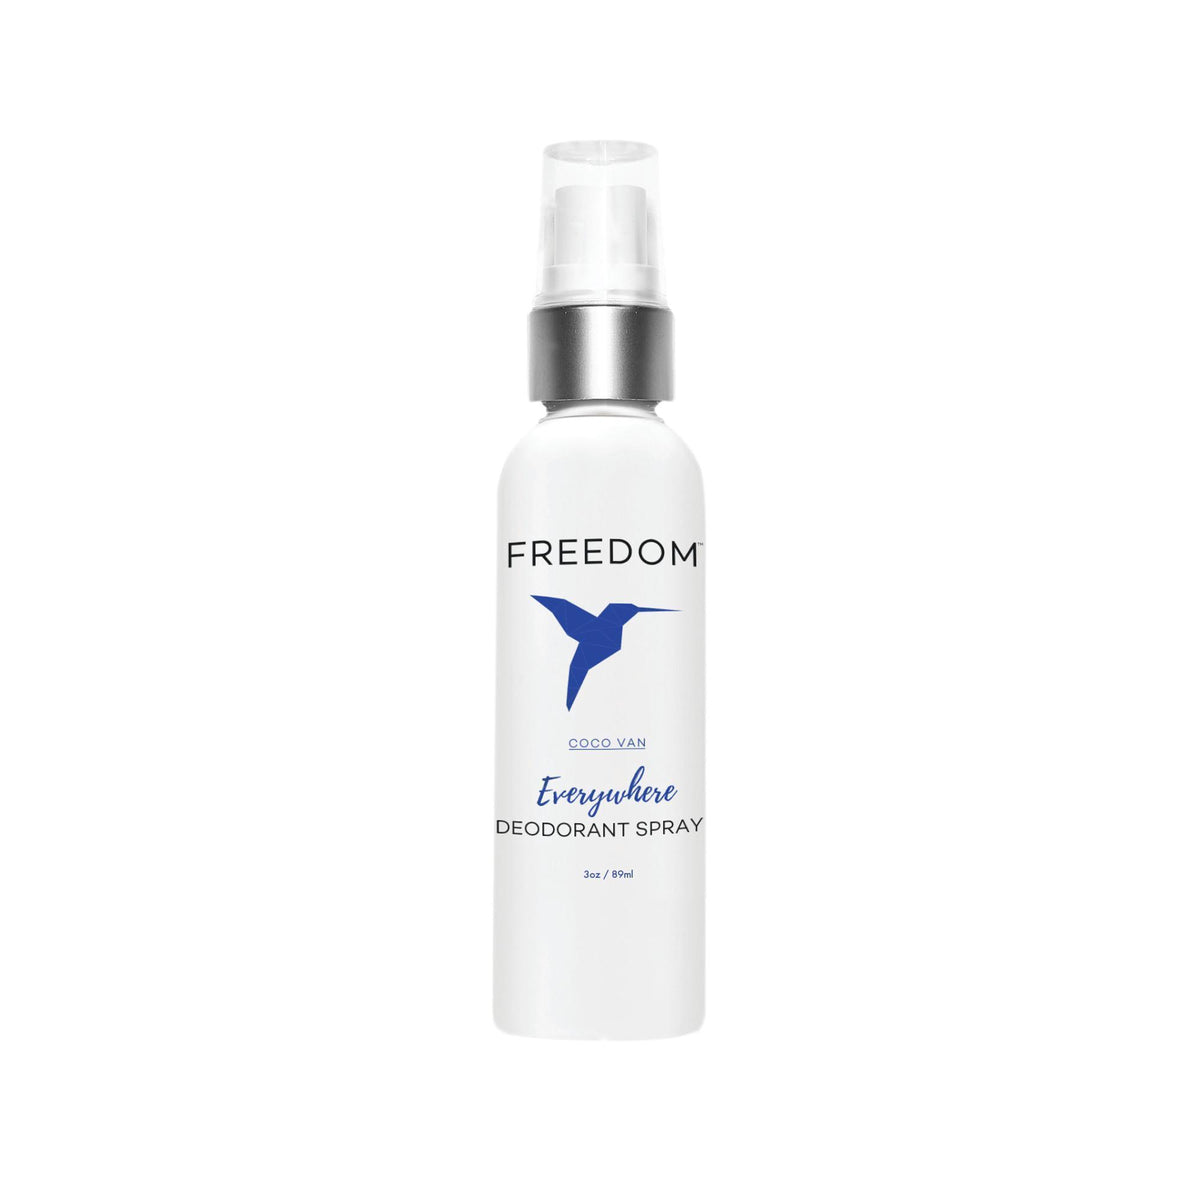 Makeup, Skin & Personal Care Freedom Natural Deodorant Coco Van Everywhere Spray, 3 oz